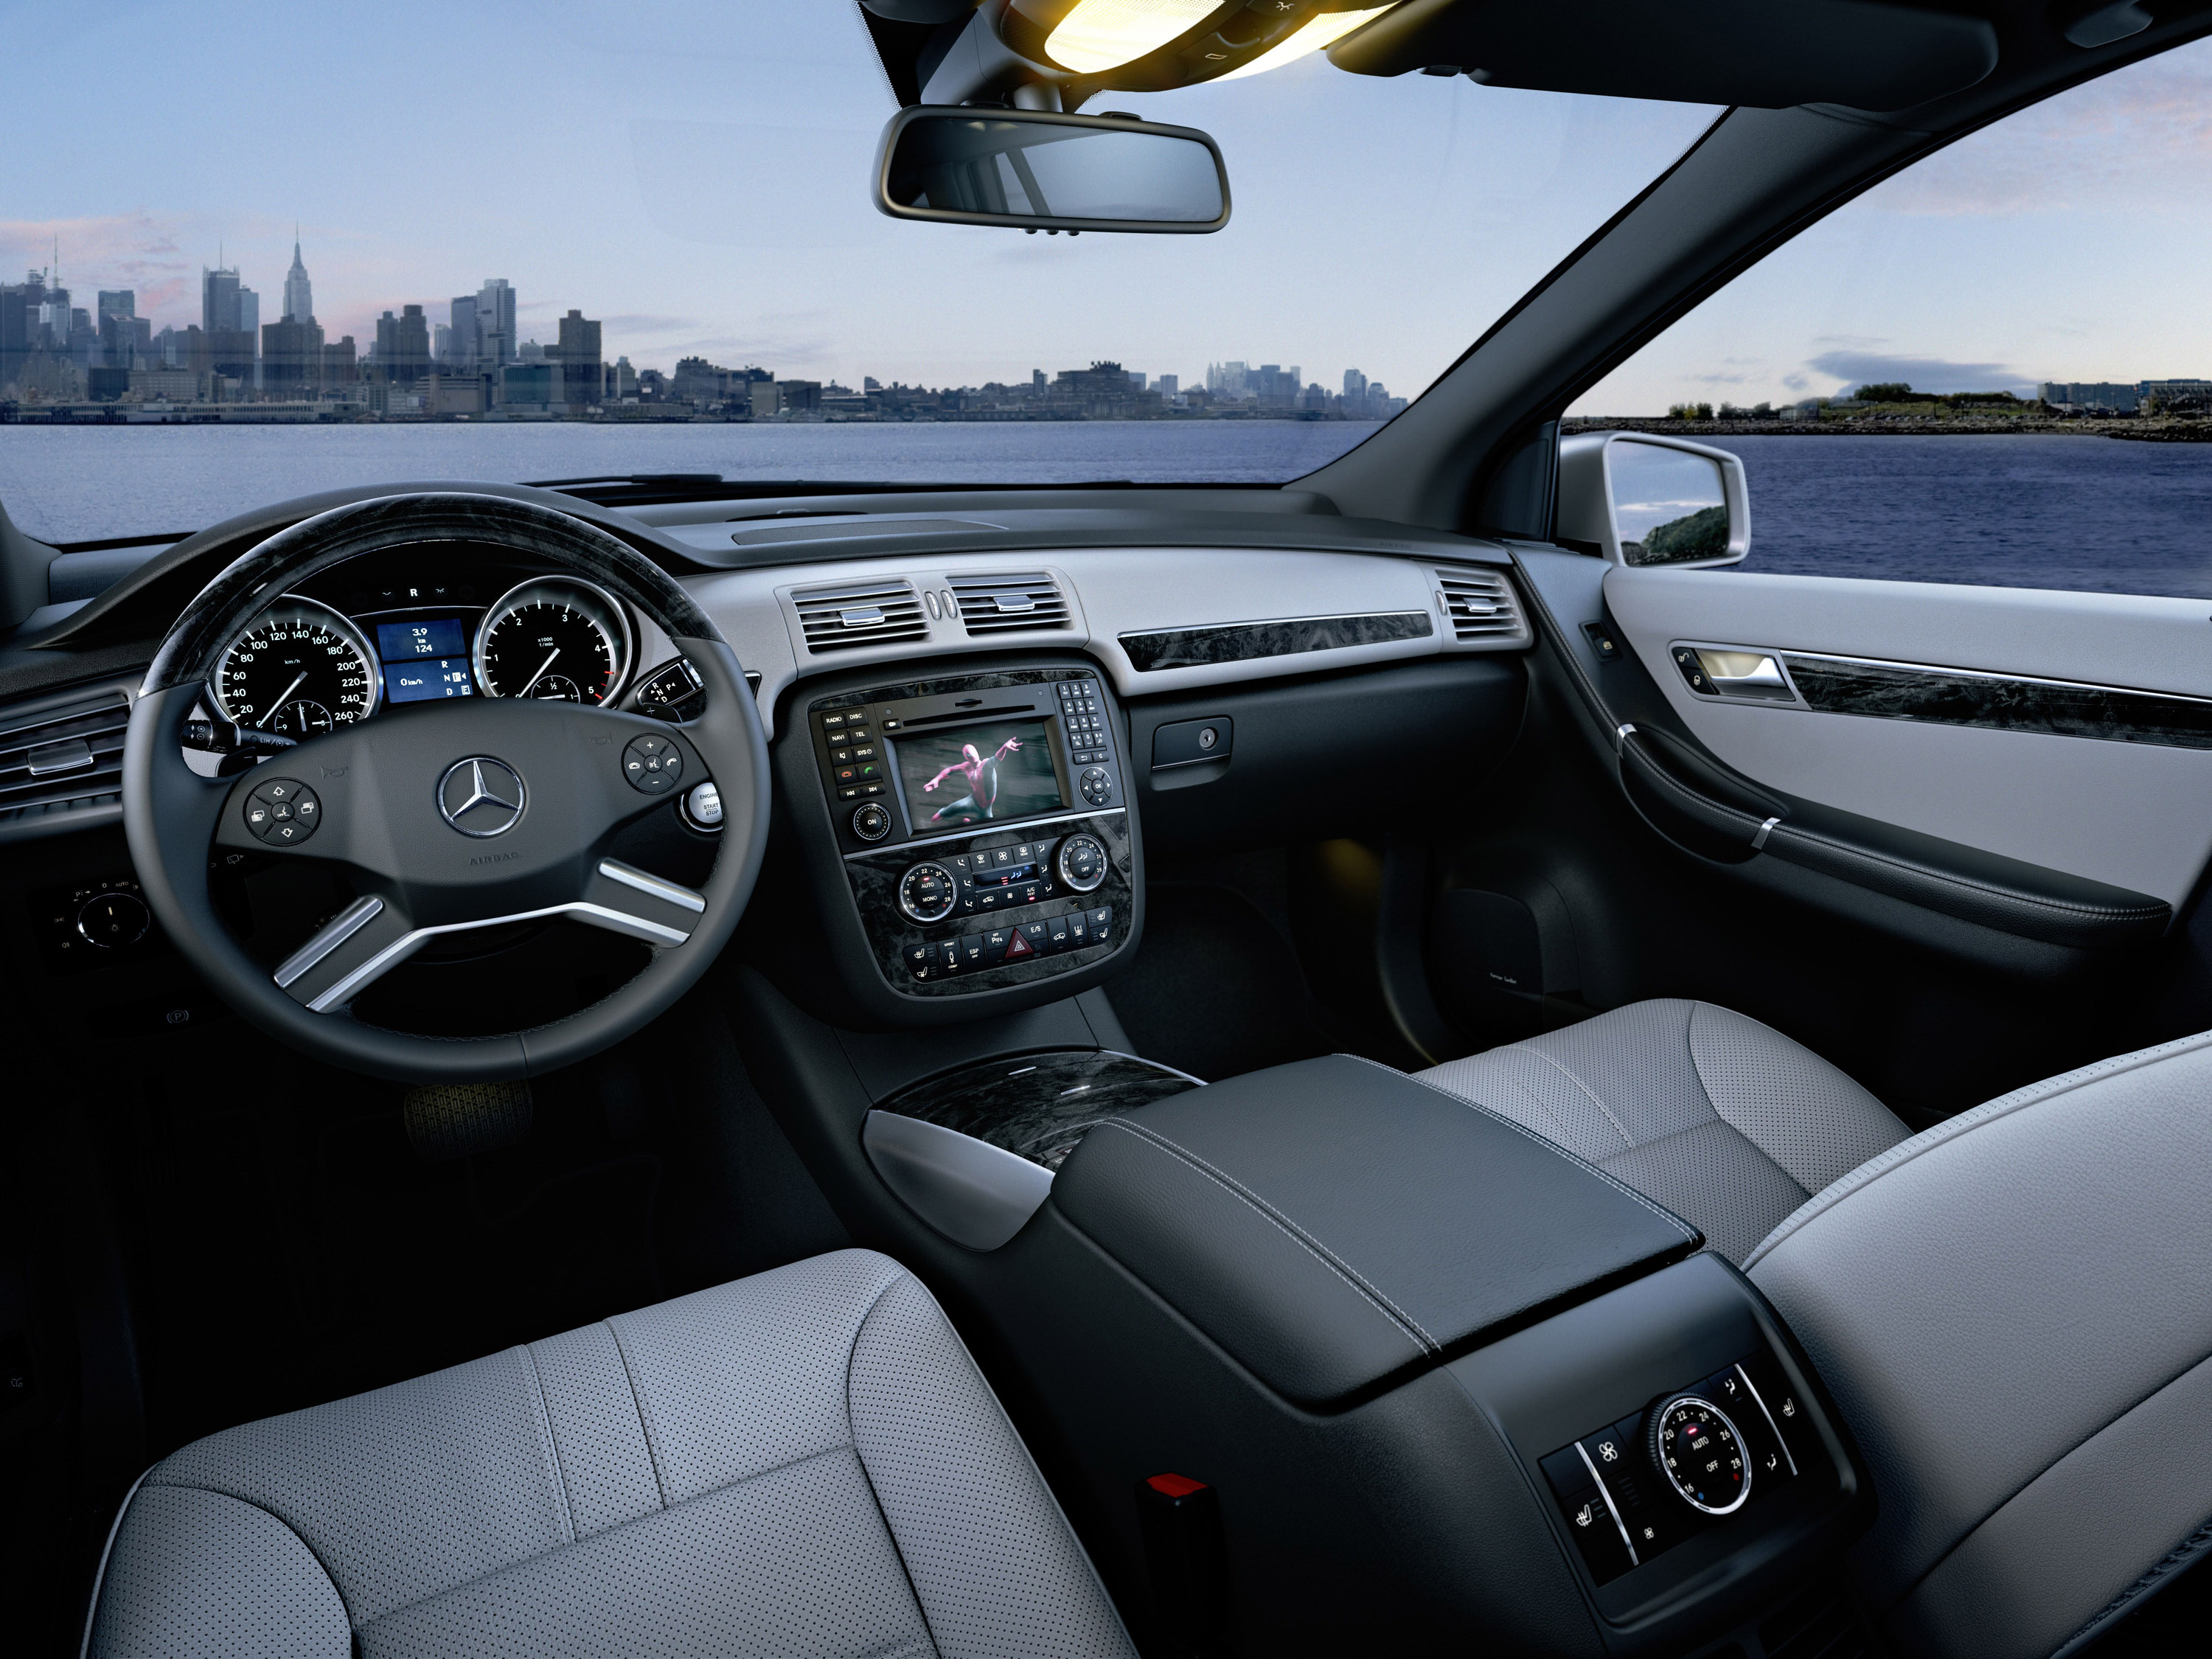 Mercedes Benz showcases its all new 2011 R Class